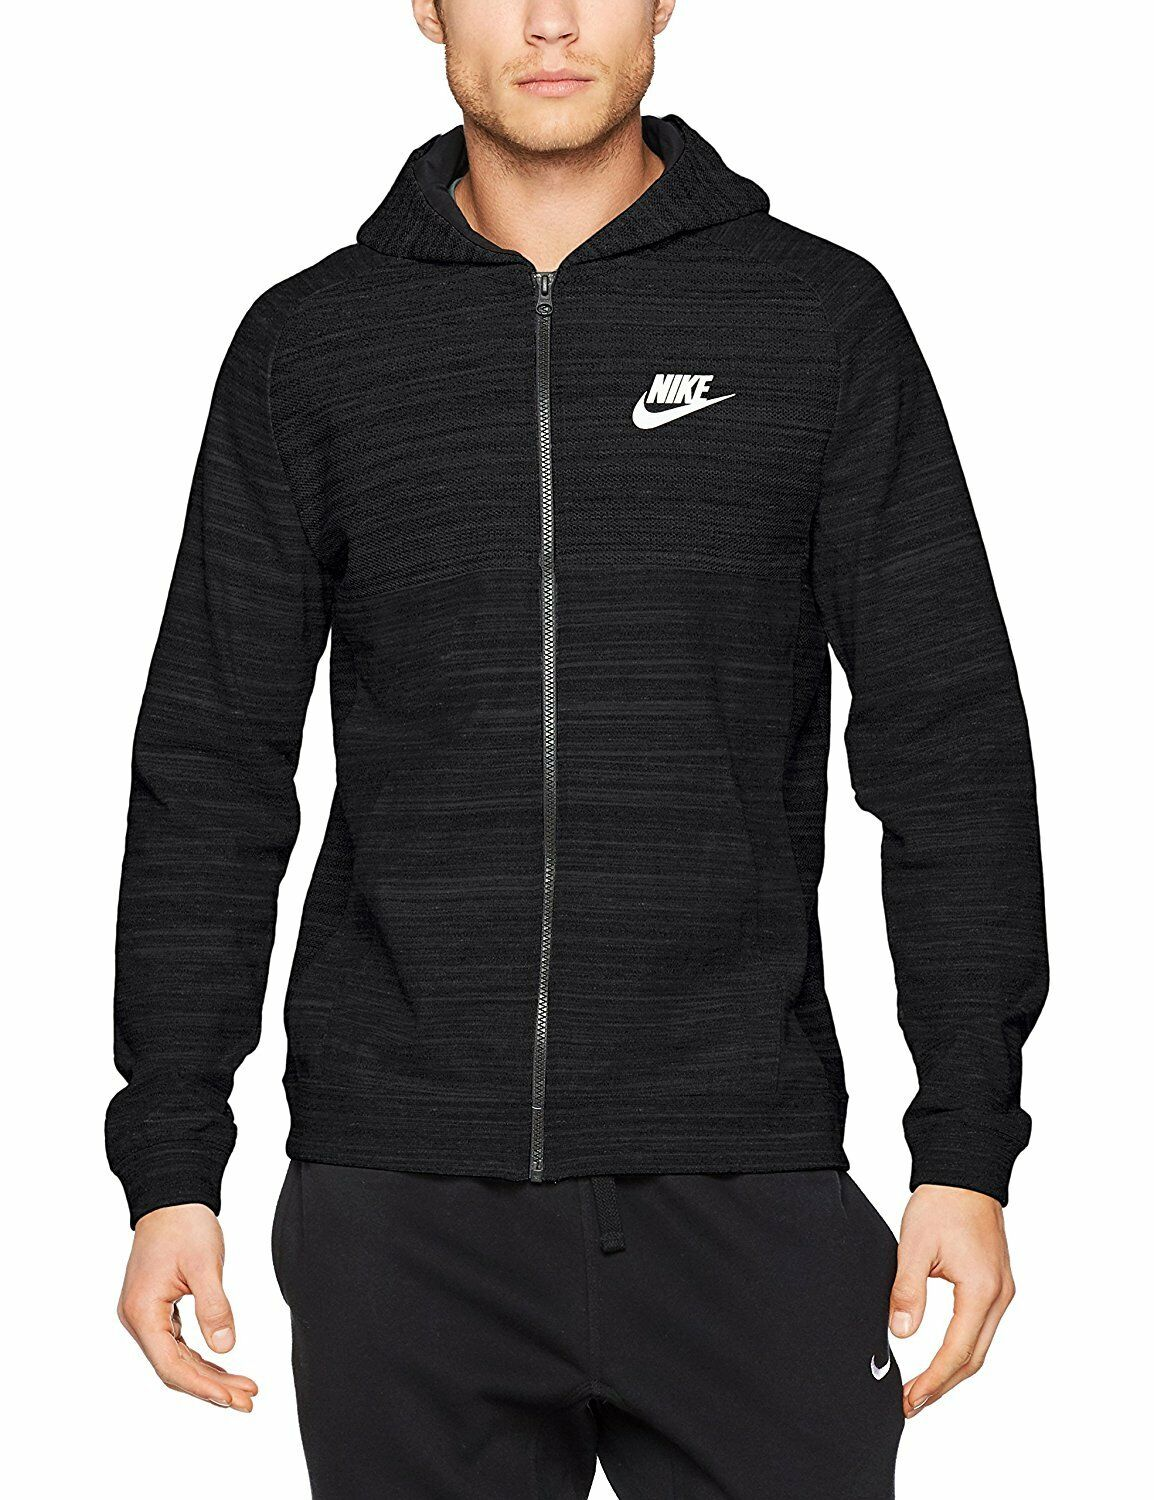 Advance Black Swoosh Sportswear Knit 15 Full Men's Zip Warm Nike w6UqCaw